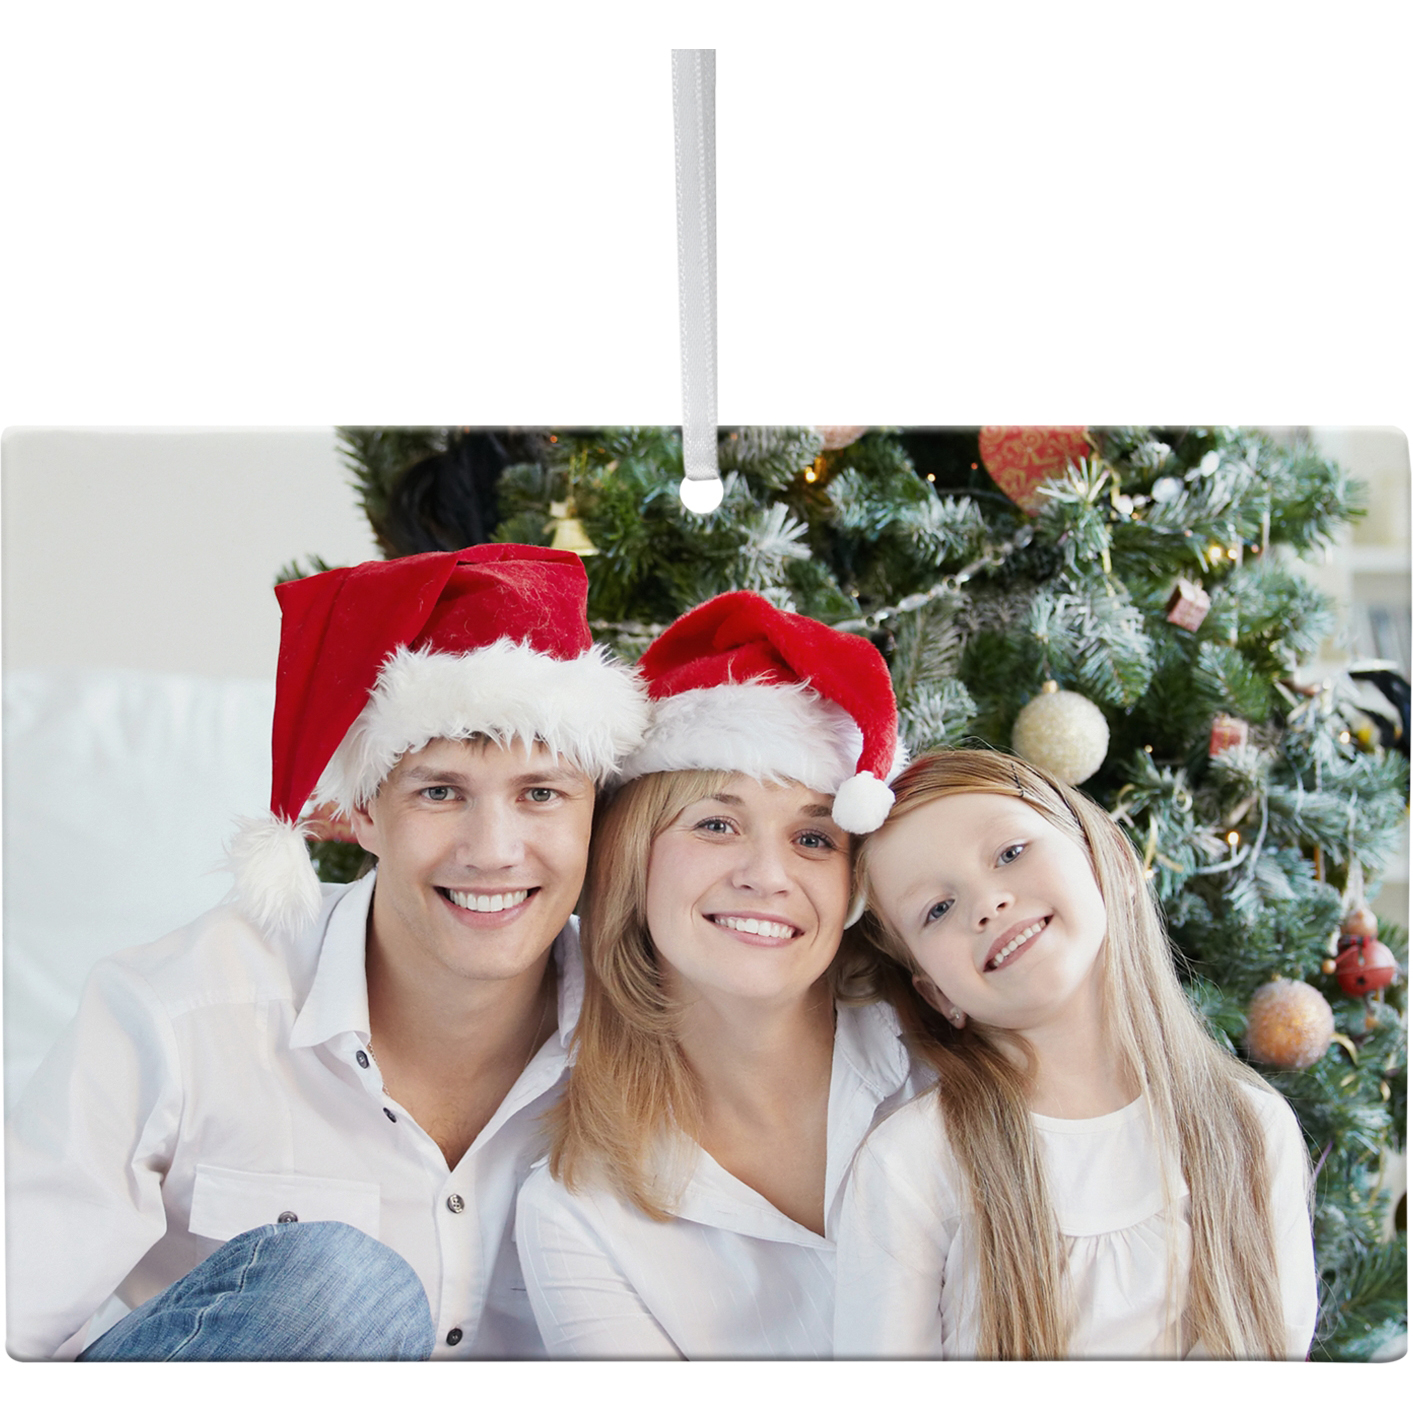 Personalized Perfect Image Rectangle Christmas Photo Ornament